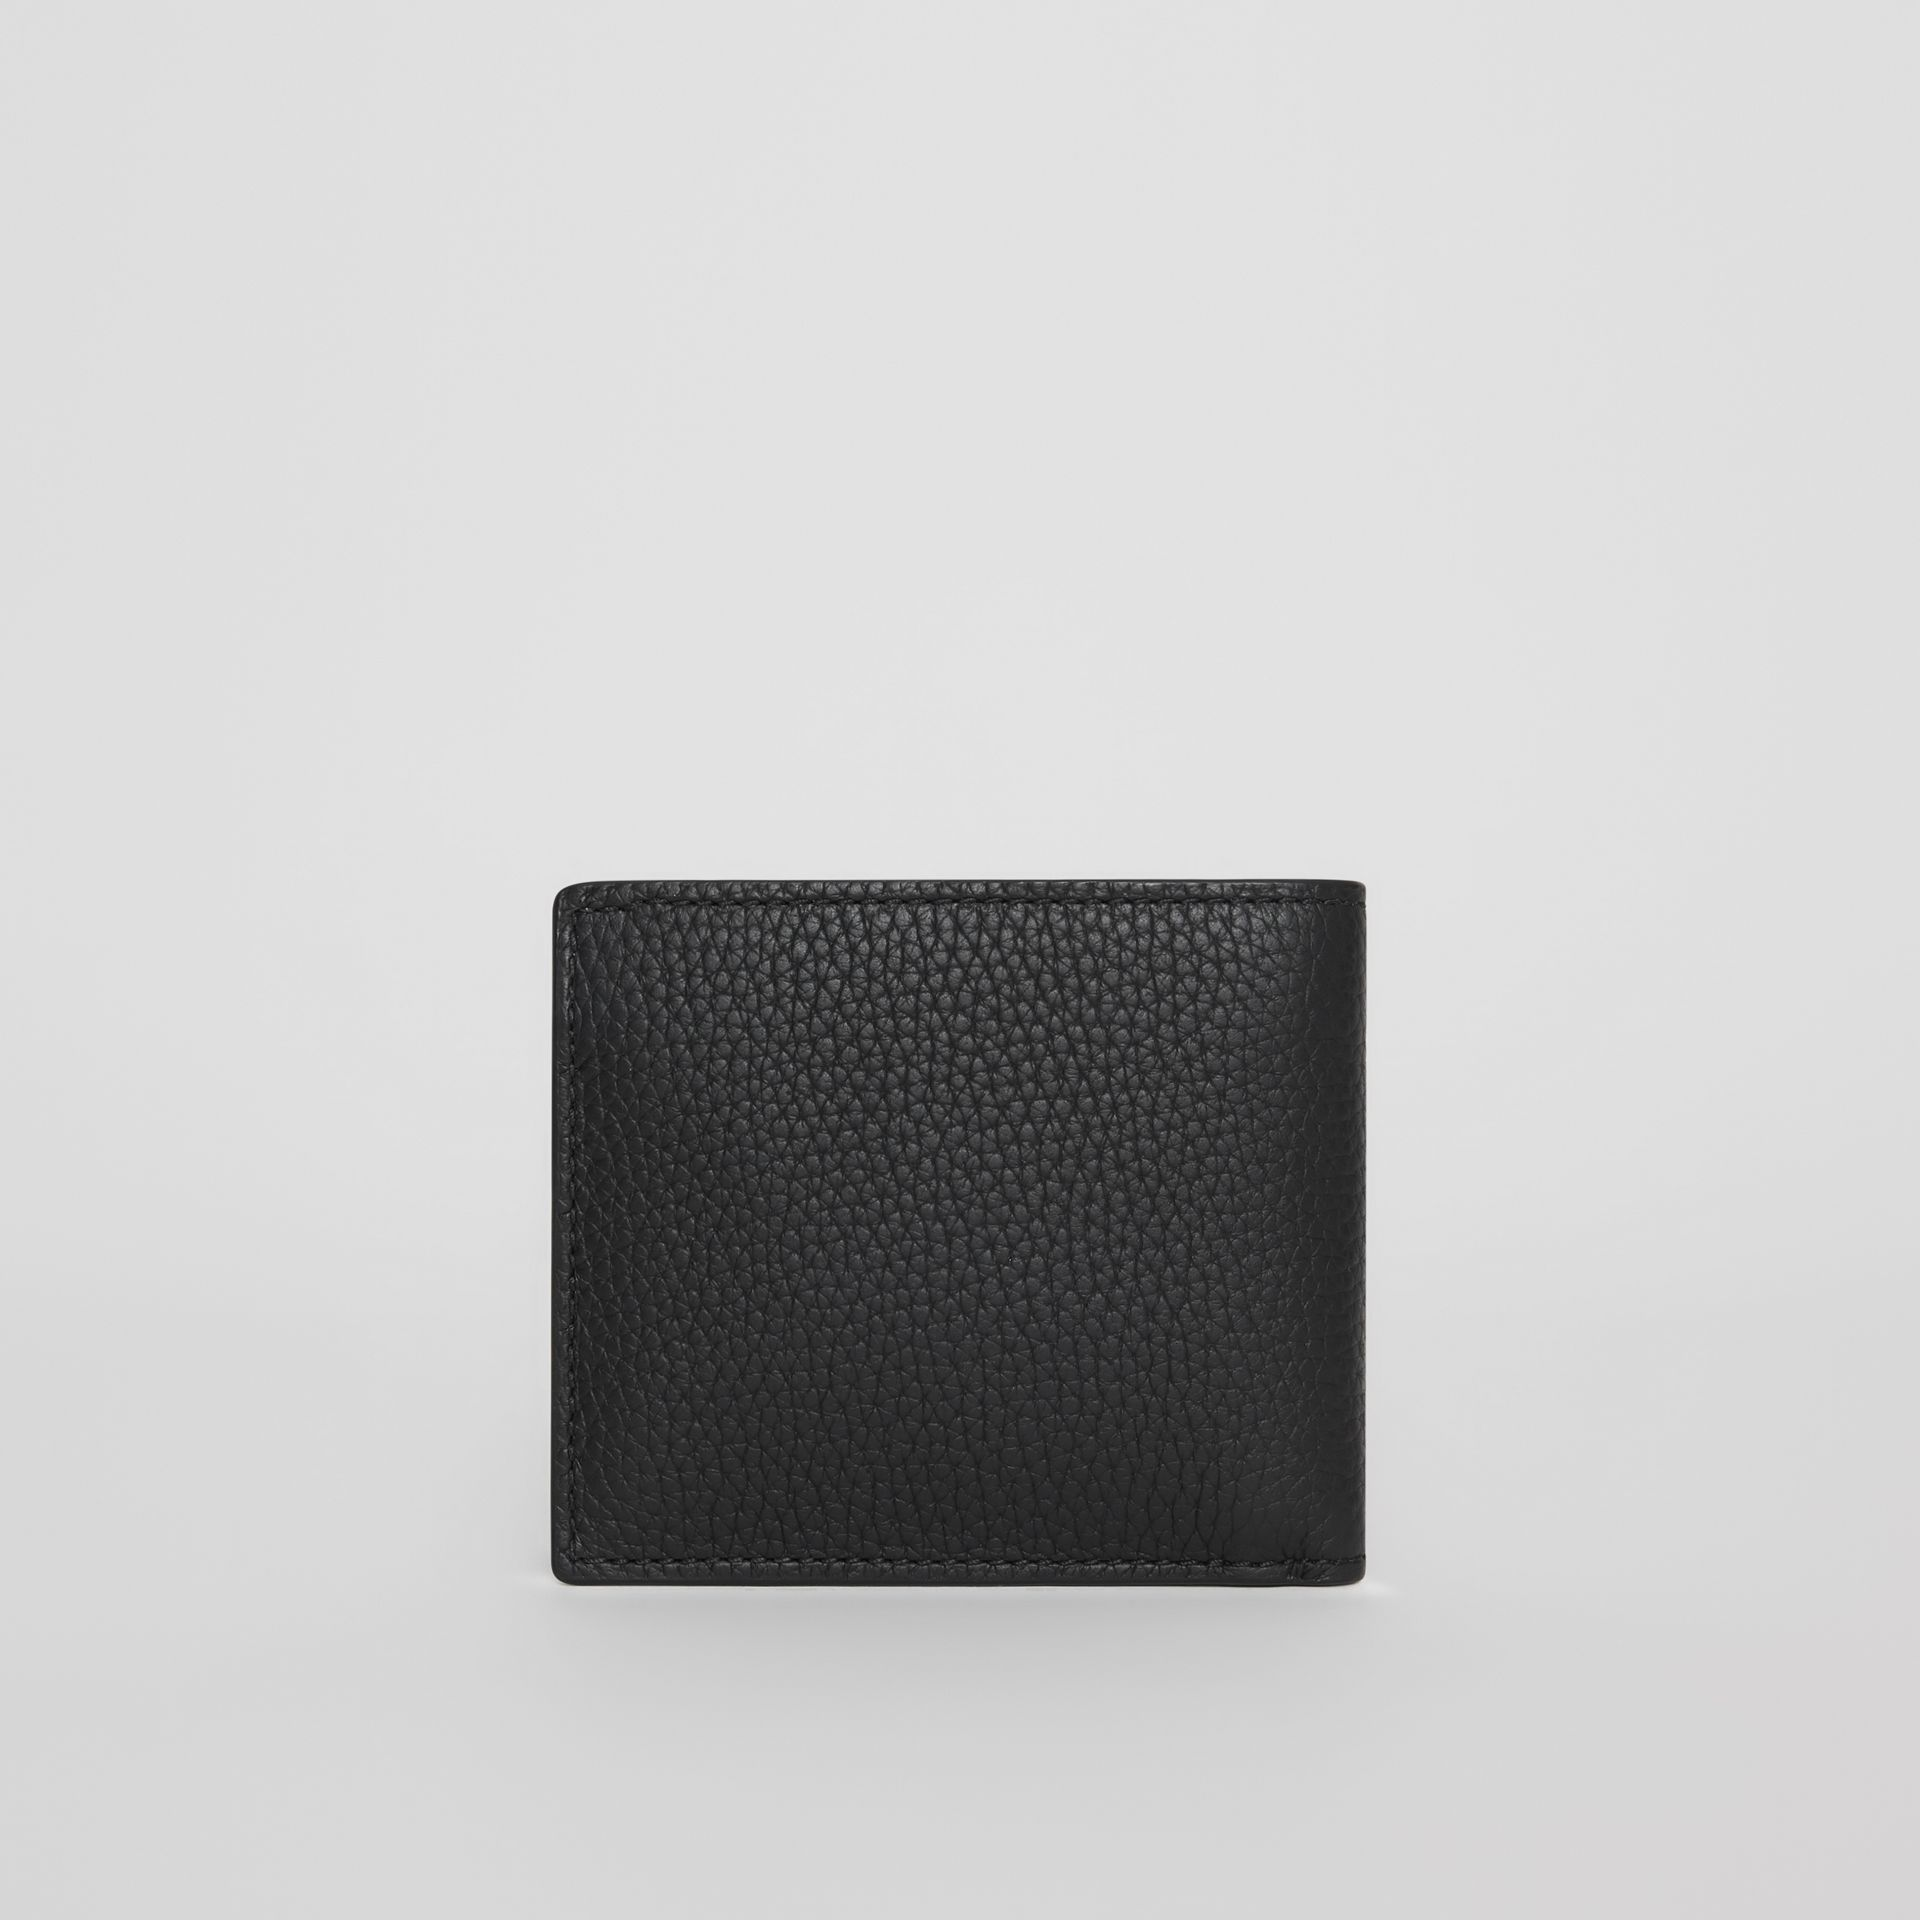 Embossed Leather Bifold Wallet in Black - Men | Burberry United Kingdom - gallery image 5